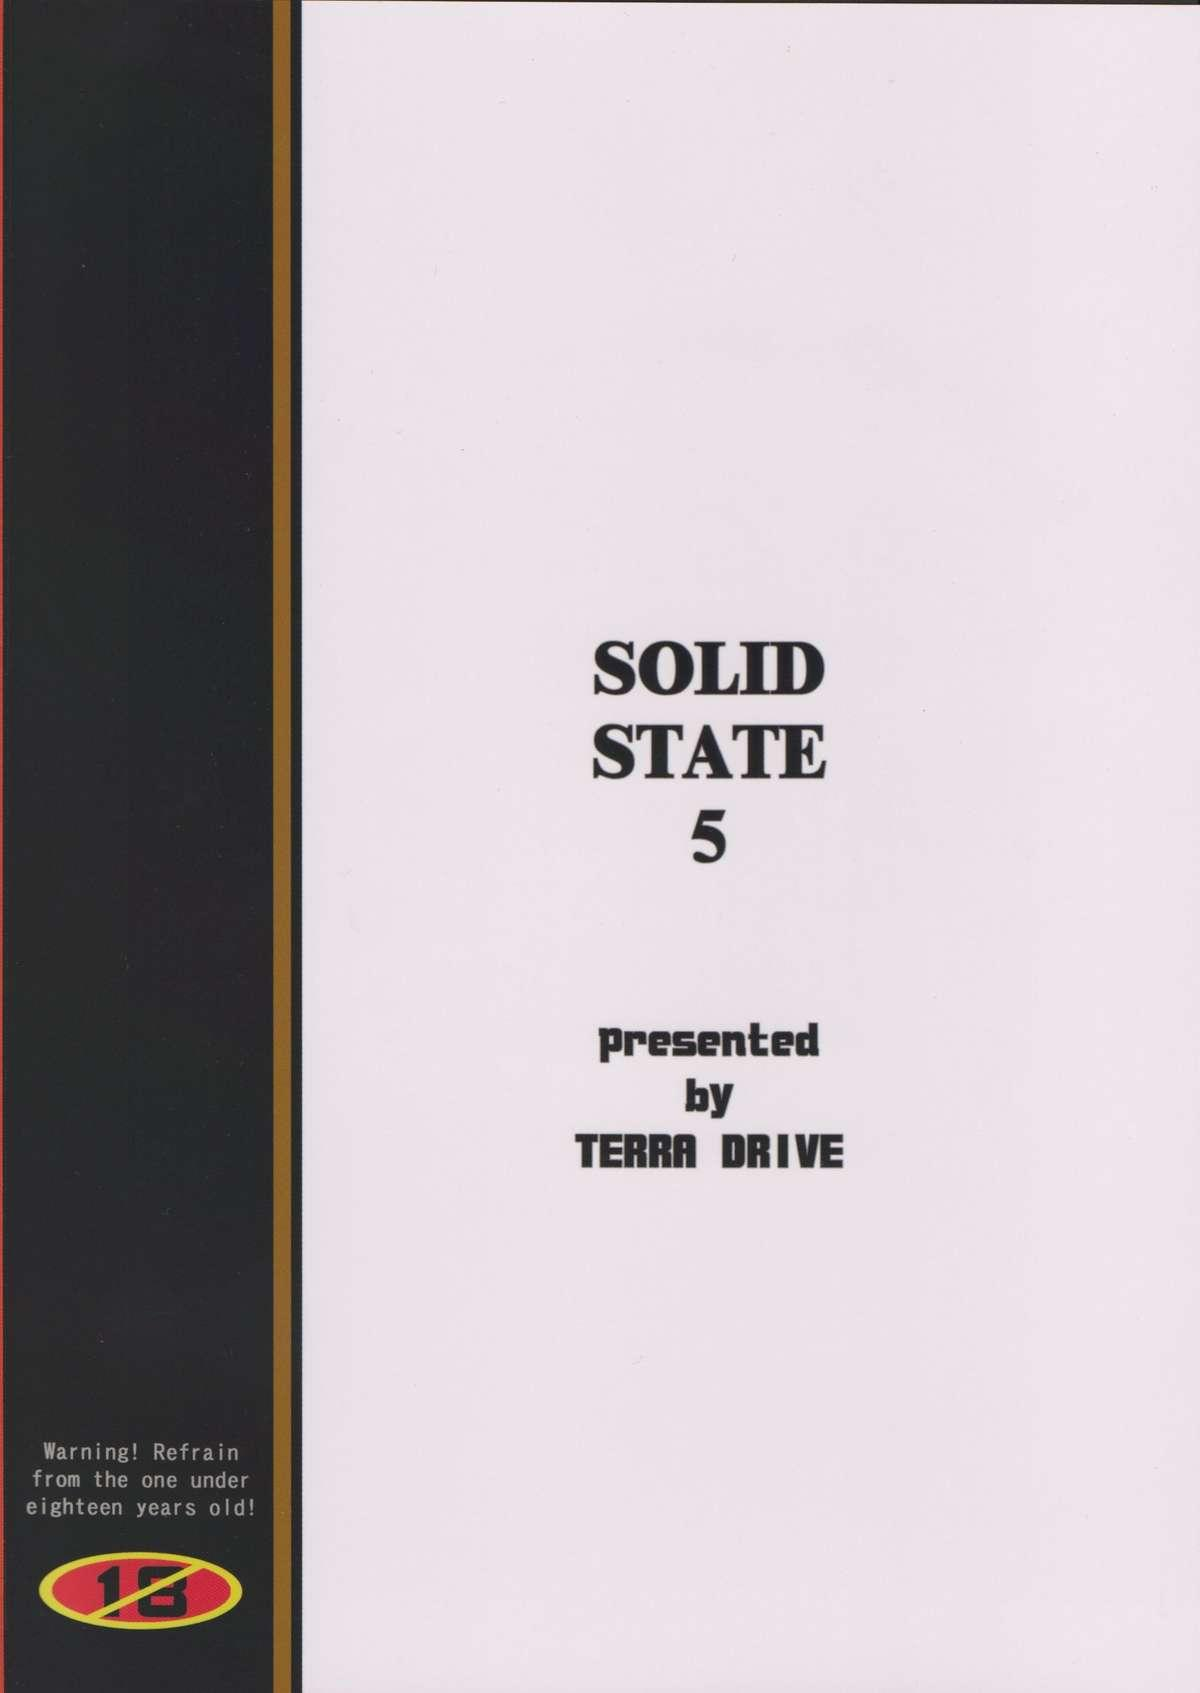 SOLID STATE 5 25